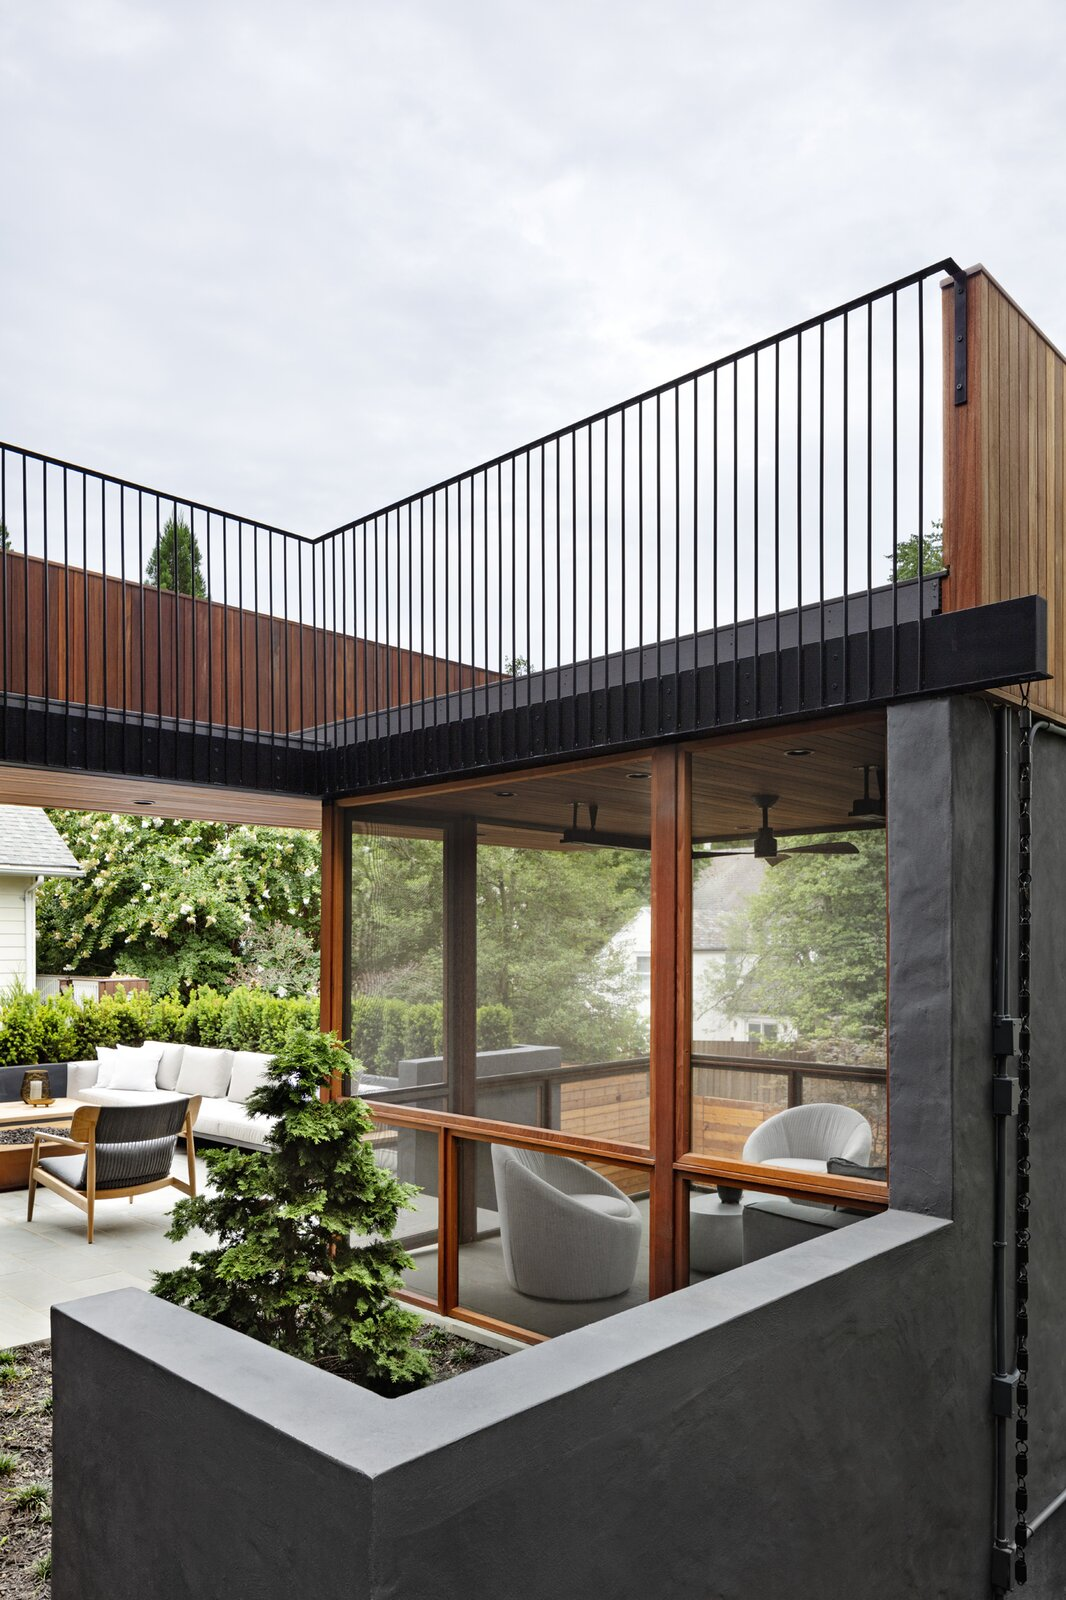 Stephenson House by Assembledge+ and Fowlkes Studio terrace and screened porch